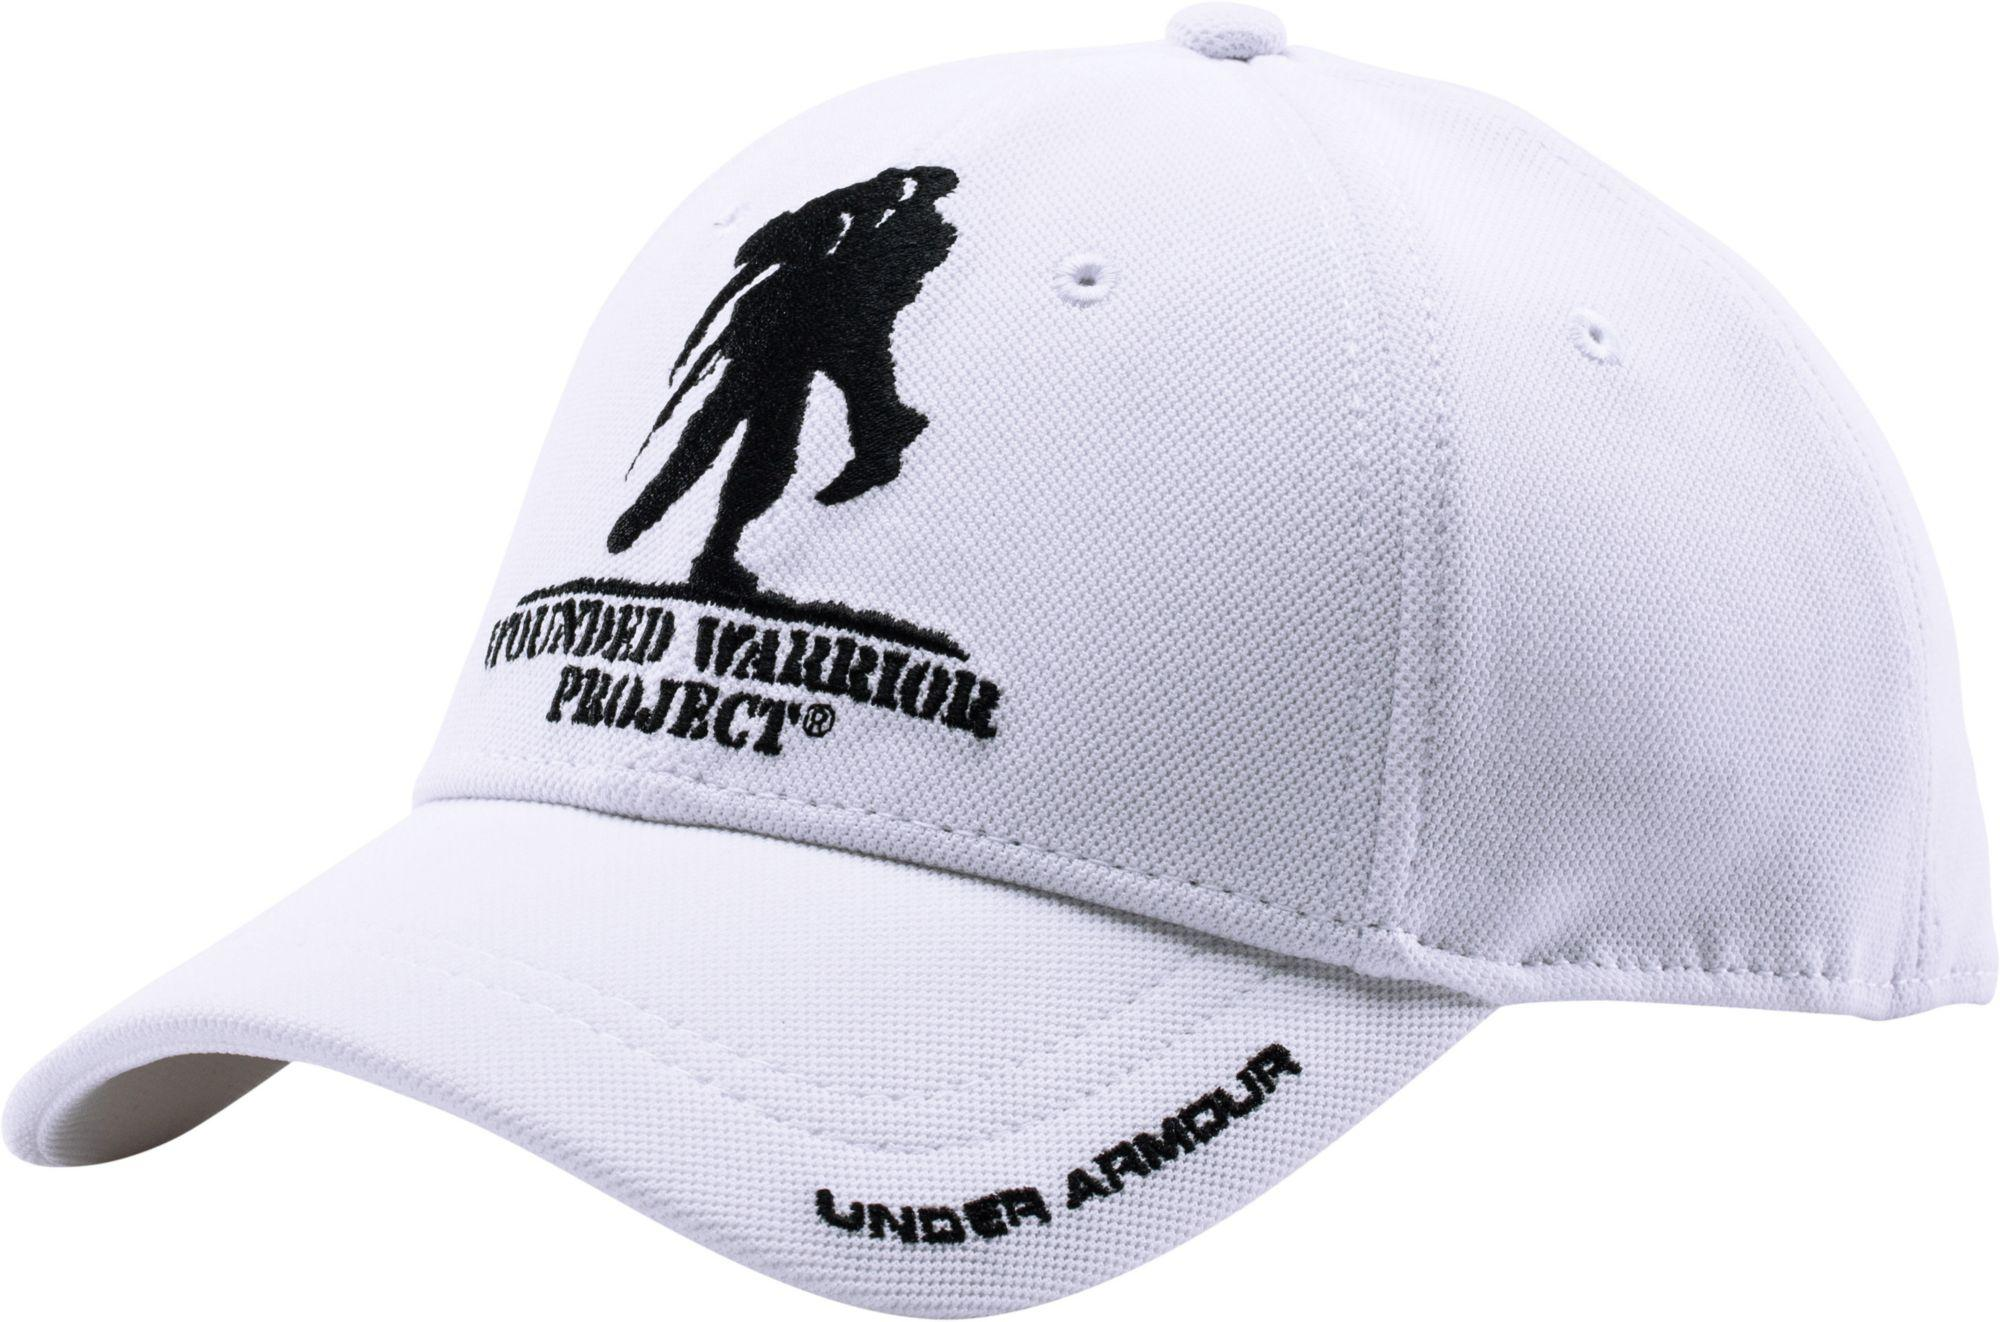 Lyst - Under Armour Wounded Warrior Project Snapback Hat in White ... 695a91a35a1